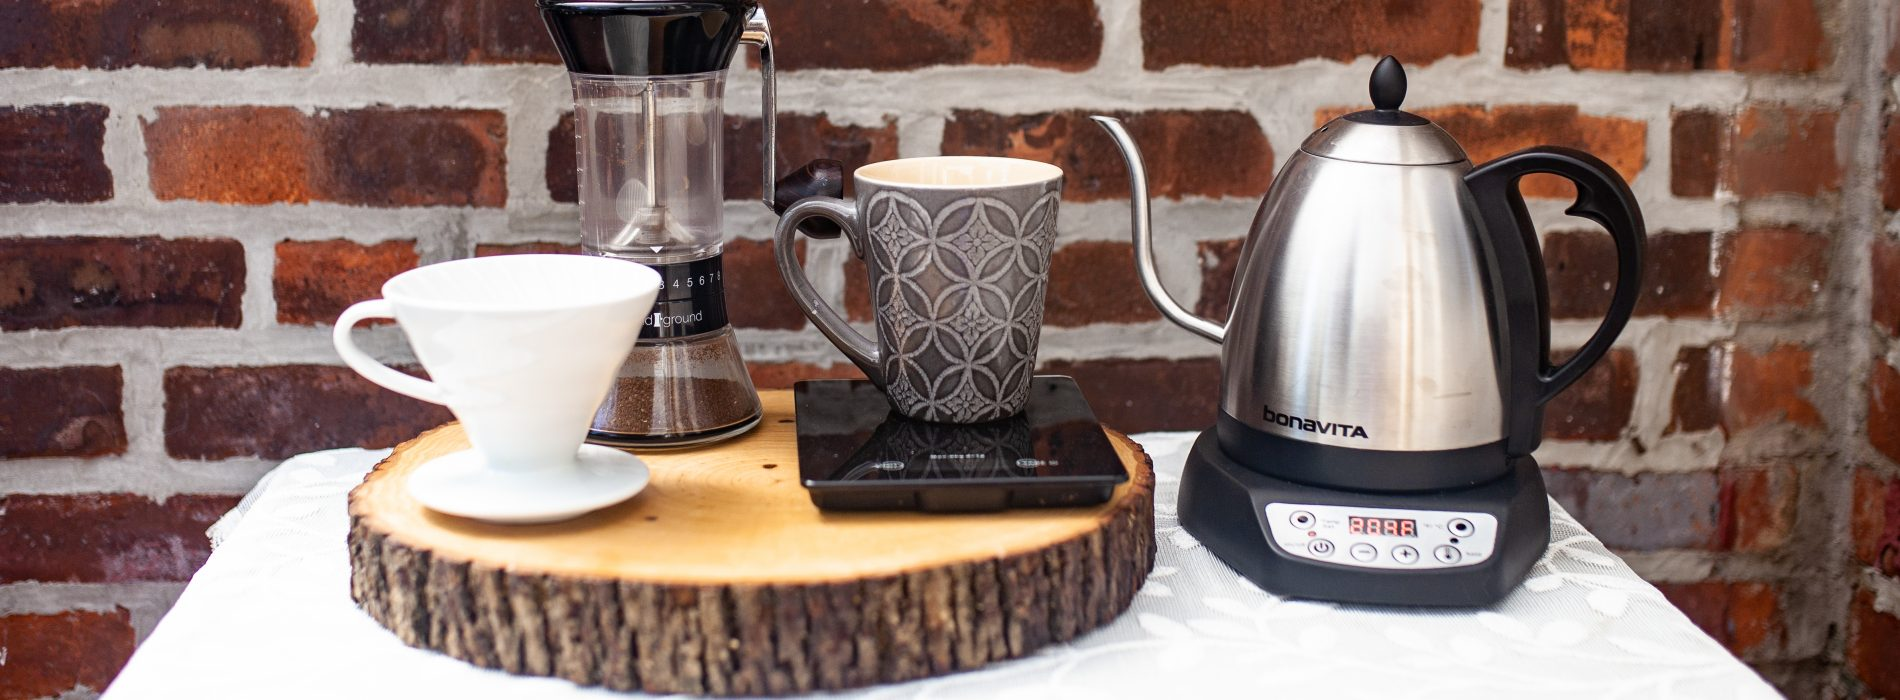 pour over coffee brew guide for fresh roasted coffee